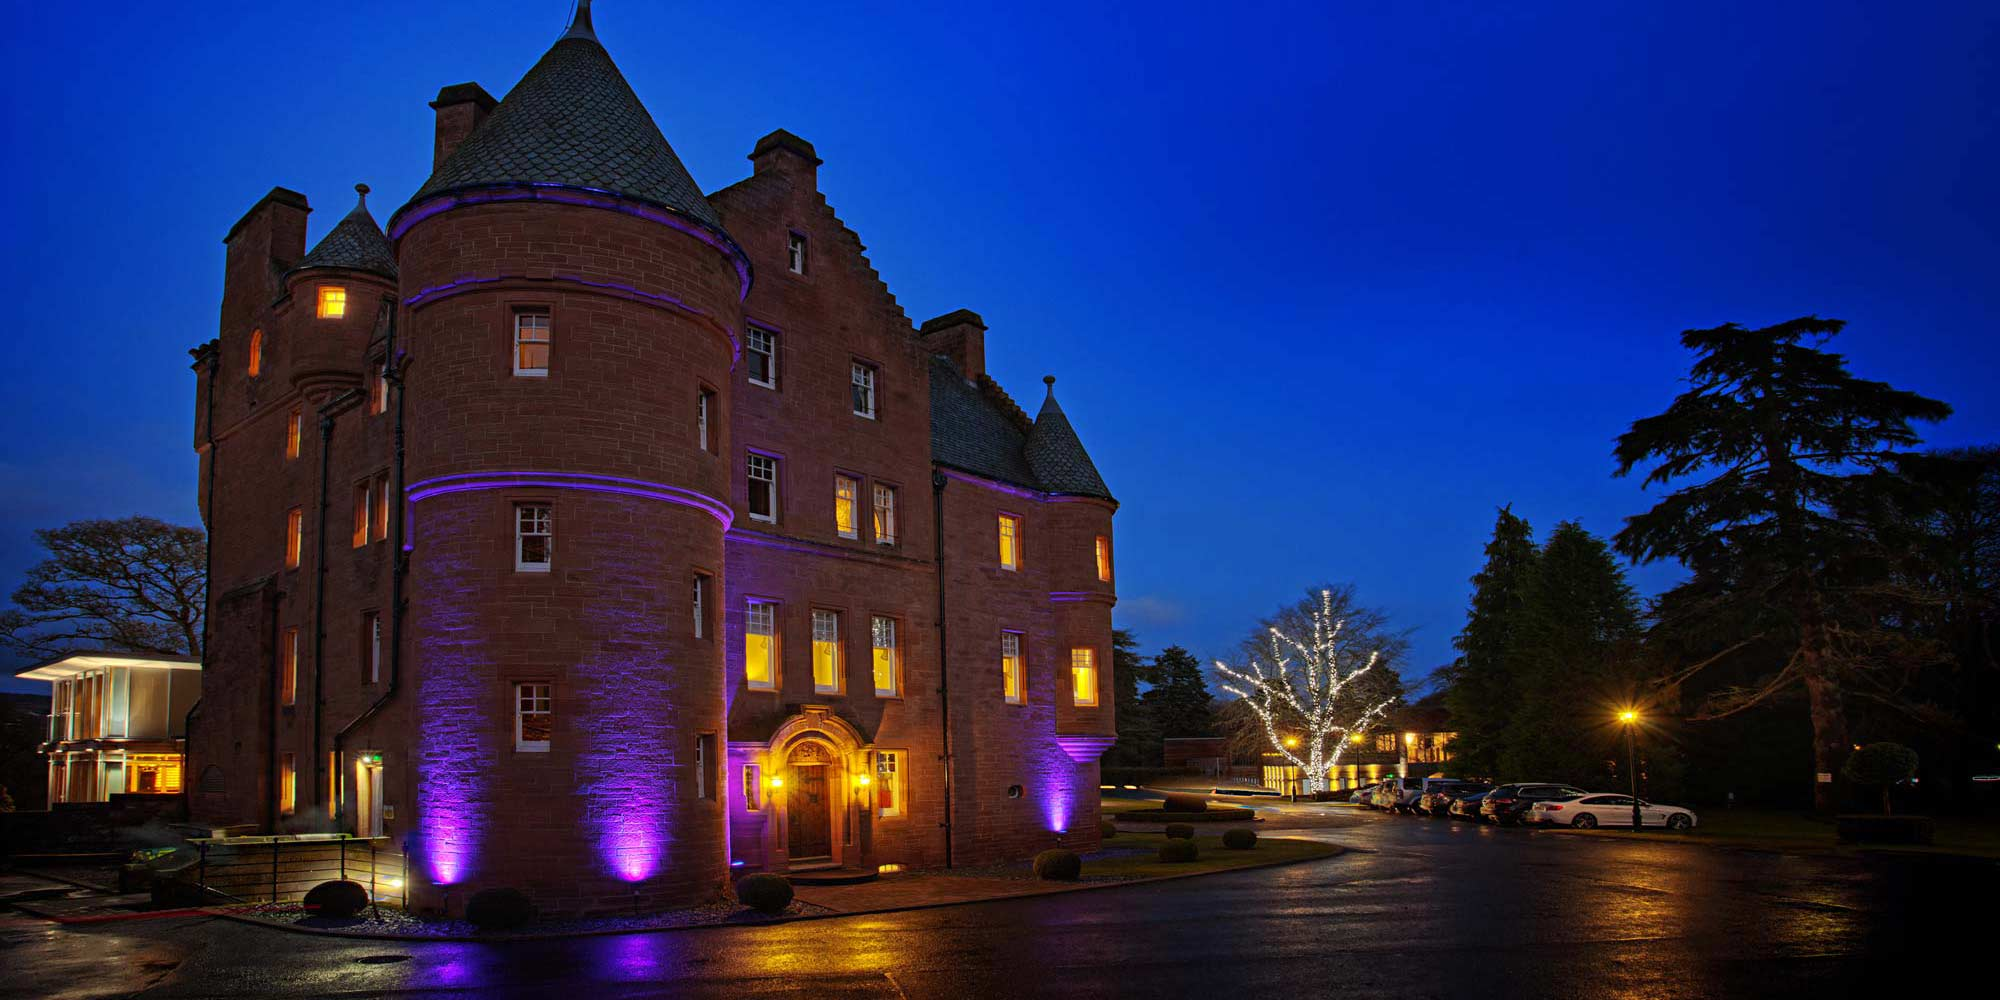 Fonab Castle Luxury 5 Star Castle Hotel In Highland Perthshire